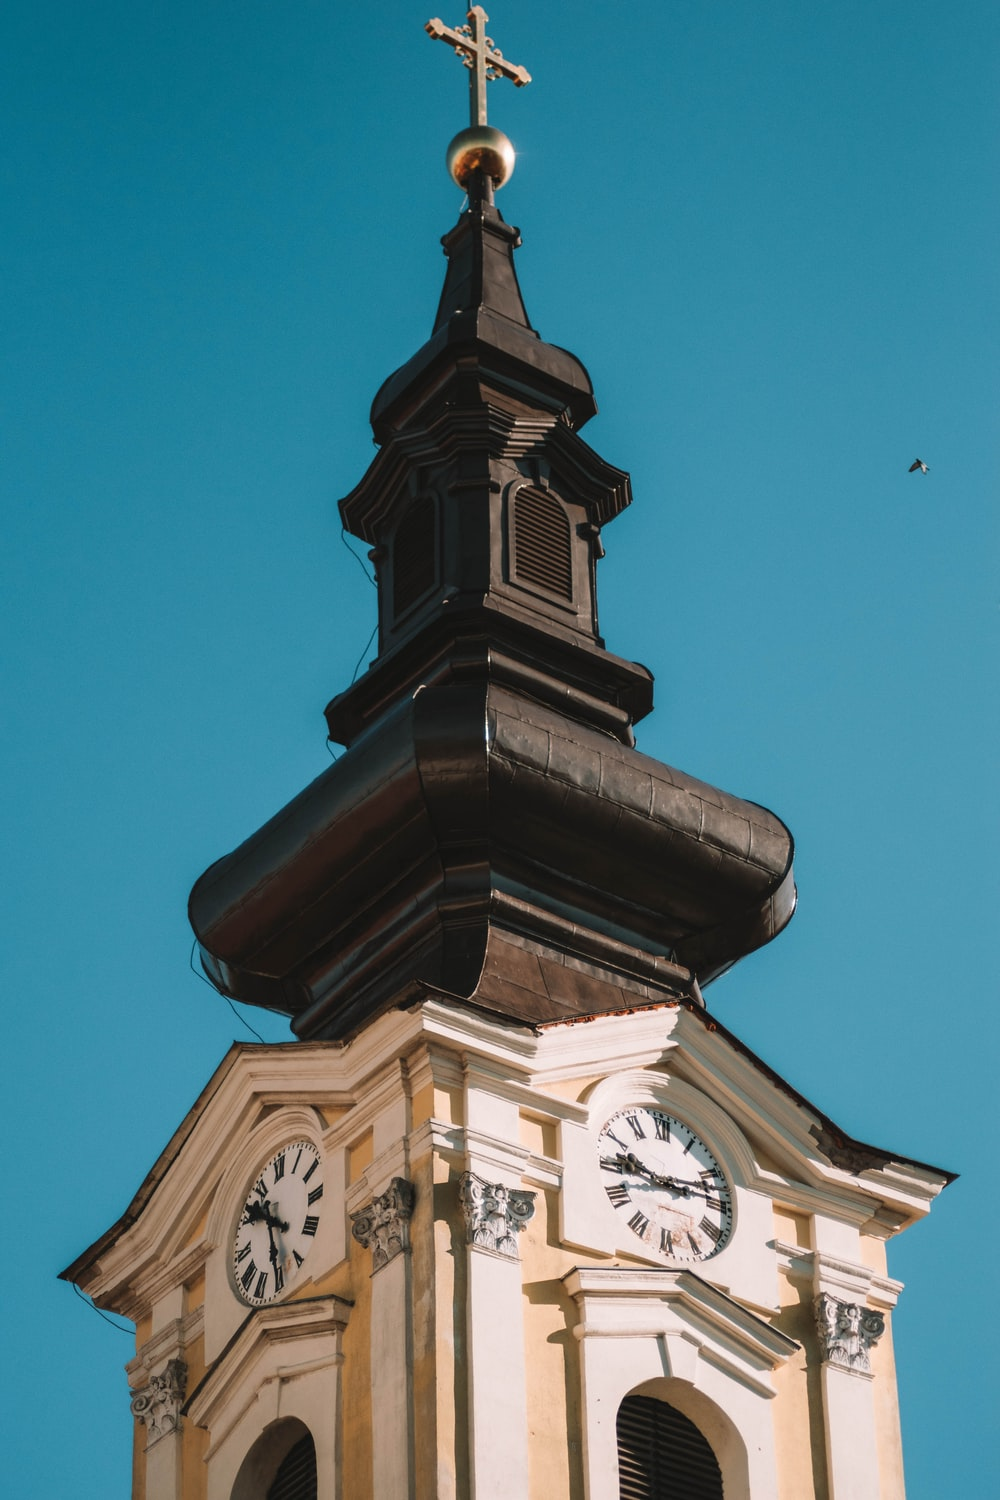 brown concrete tower with clock under blue sky during daytime